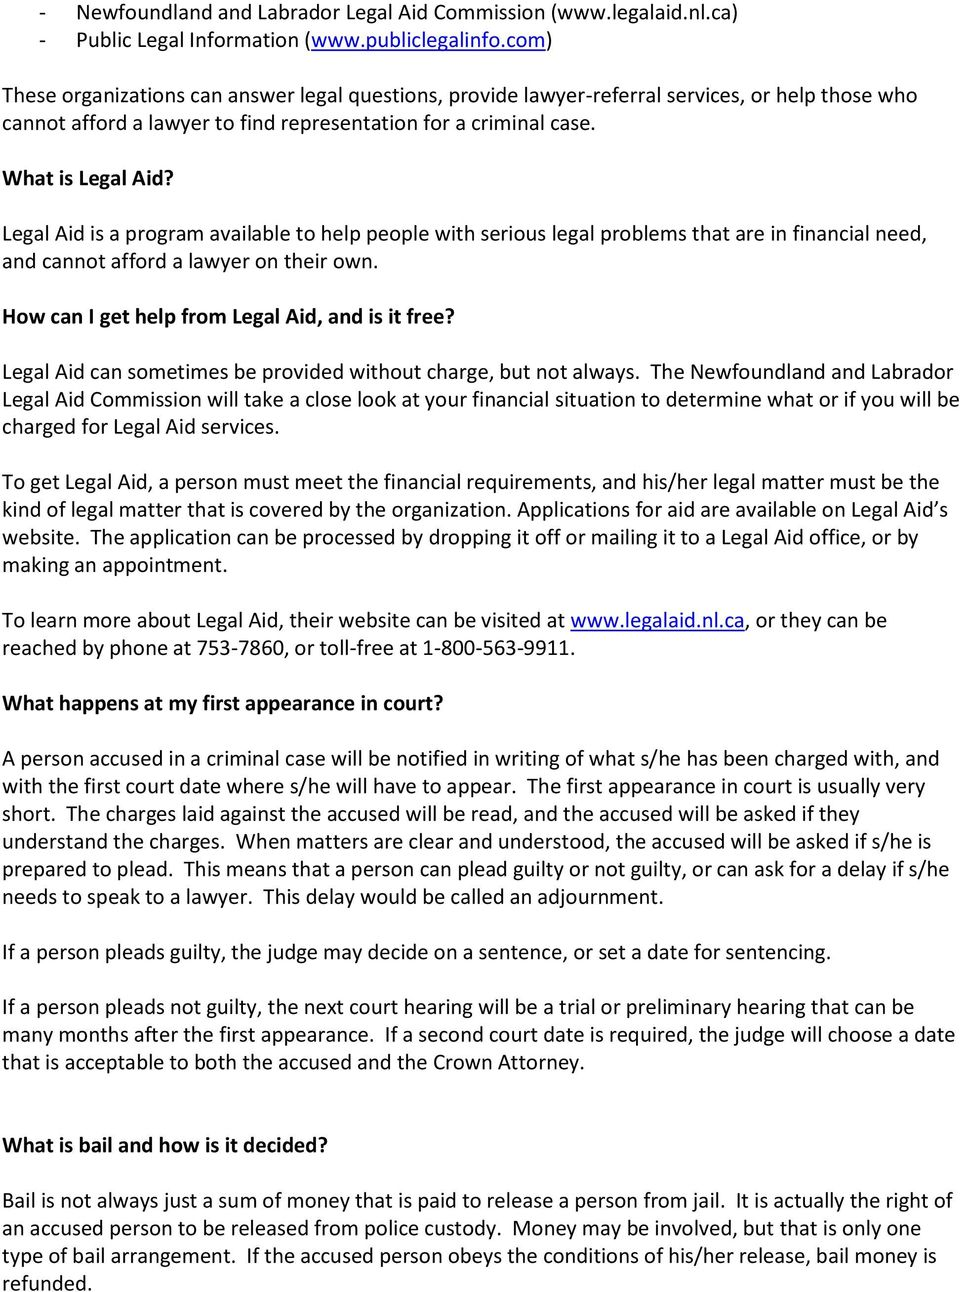 Legal Aid is a prgram available t help peple with serius legal prblems that are in financial need, and cannt affrd a lawyer n their wn. Hw can I get help frm Legal Aid, and is it free?